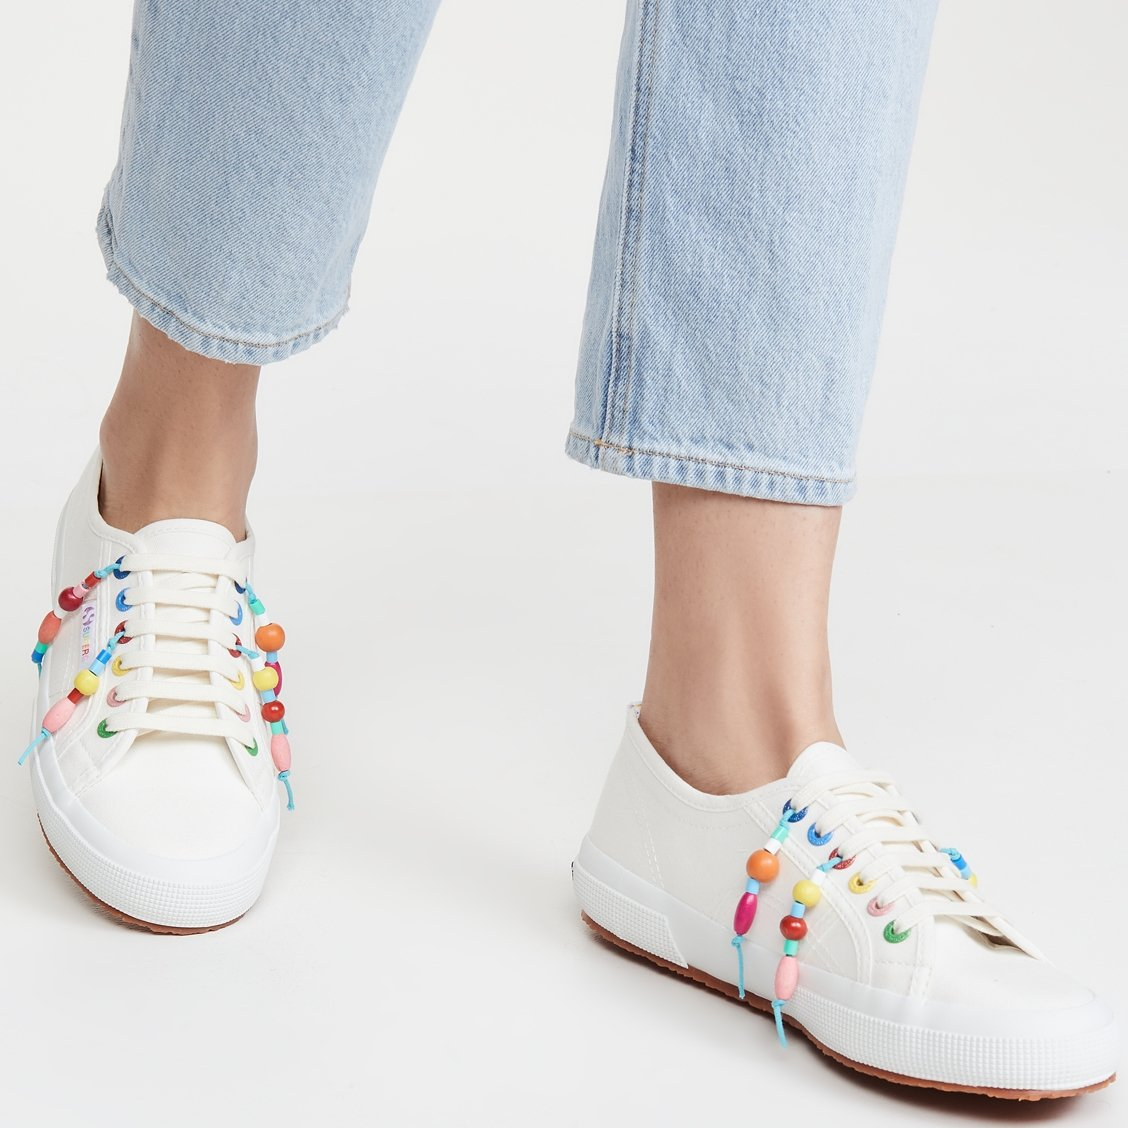 Off white Mira Mikati x Superga sneakers with multicolored grommets and beaded tassels for a carefree off-duty look